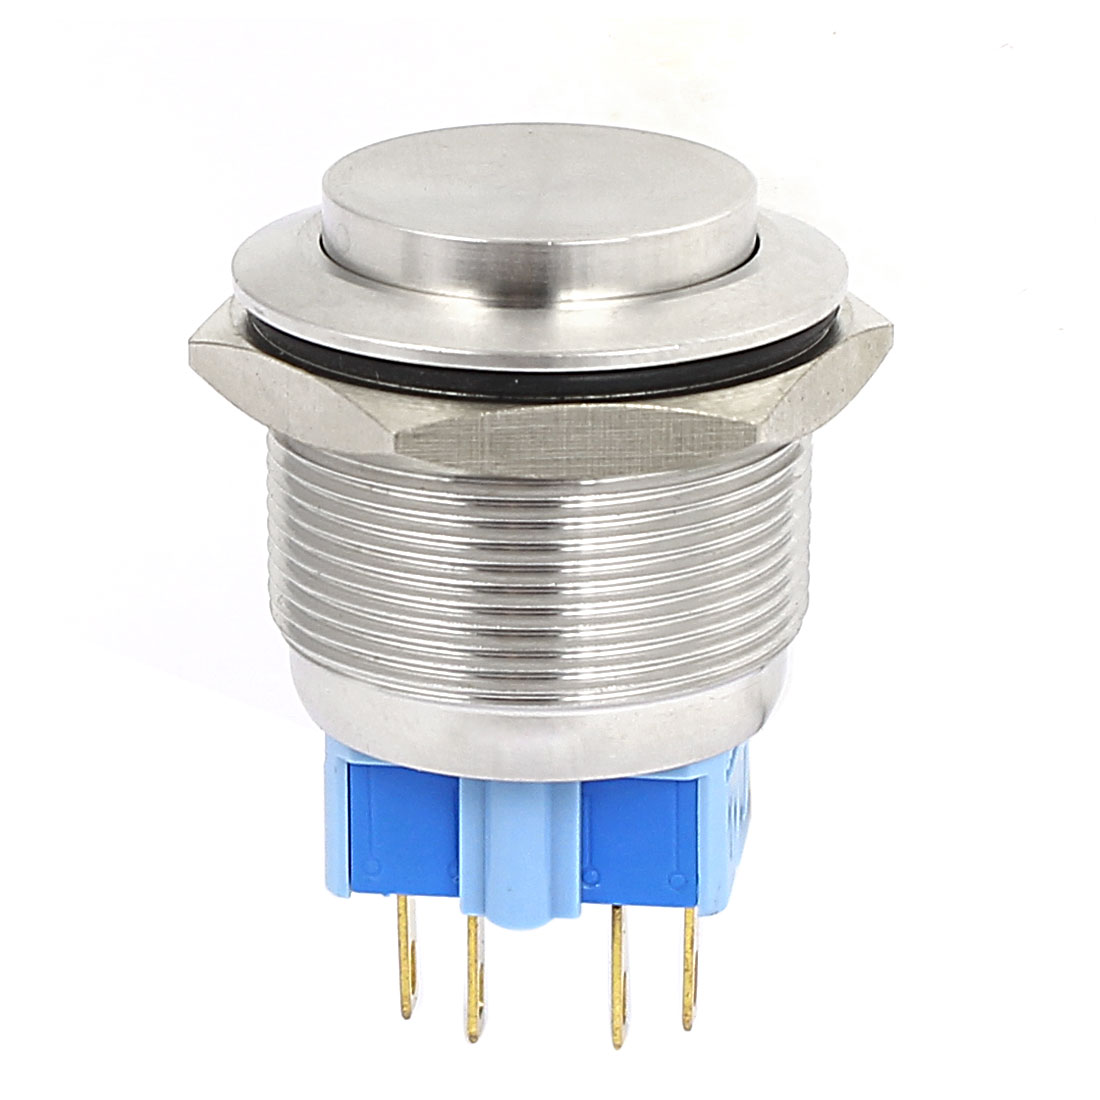 5A 250VAC 25mm DPST Momentary Metal Pushbutton Switch Raised Head Silver Tone